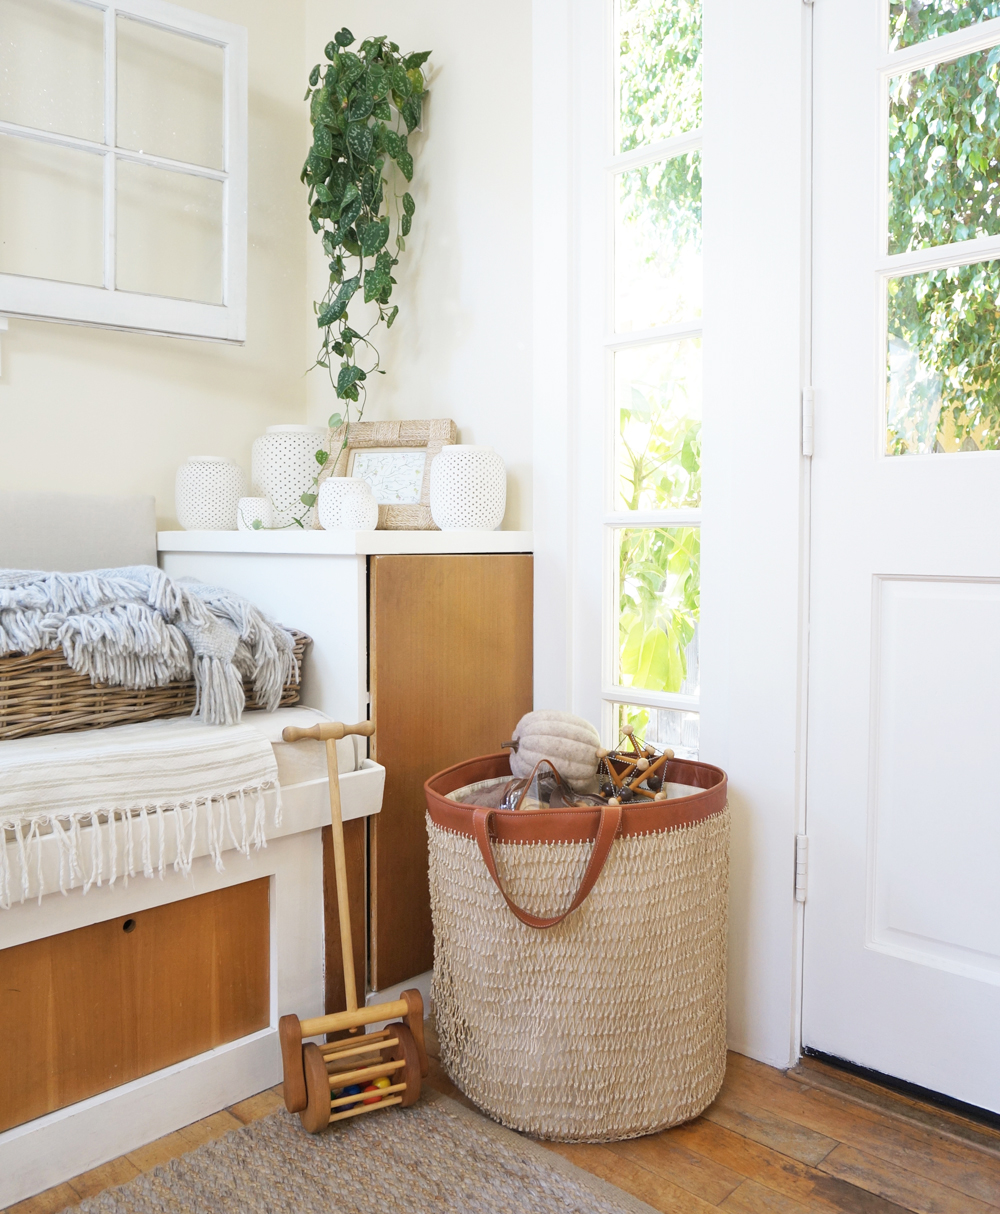 An oversized  Knotted string hamper basket contains miscellaneous toys that west enjoys daily